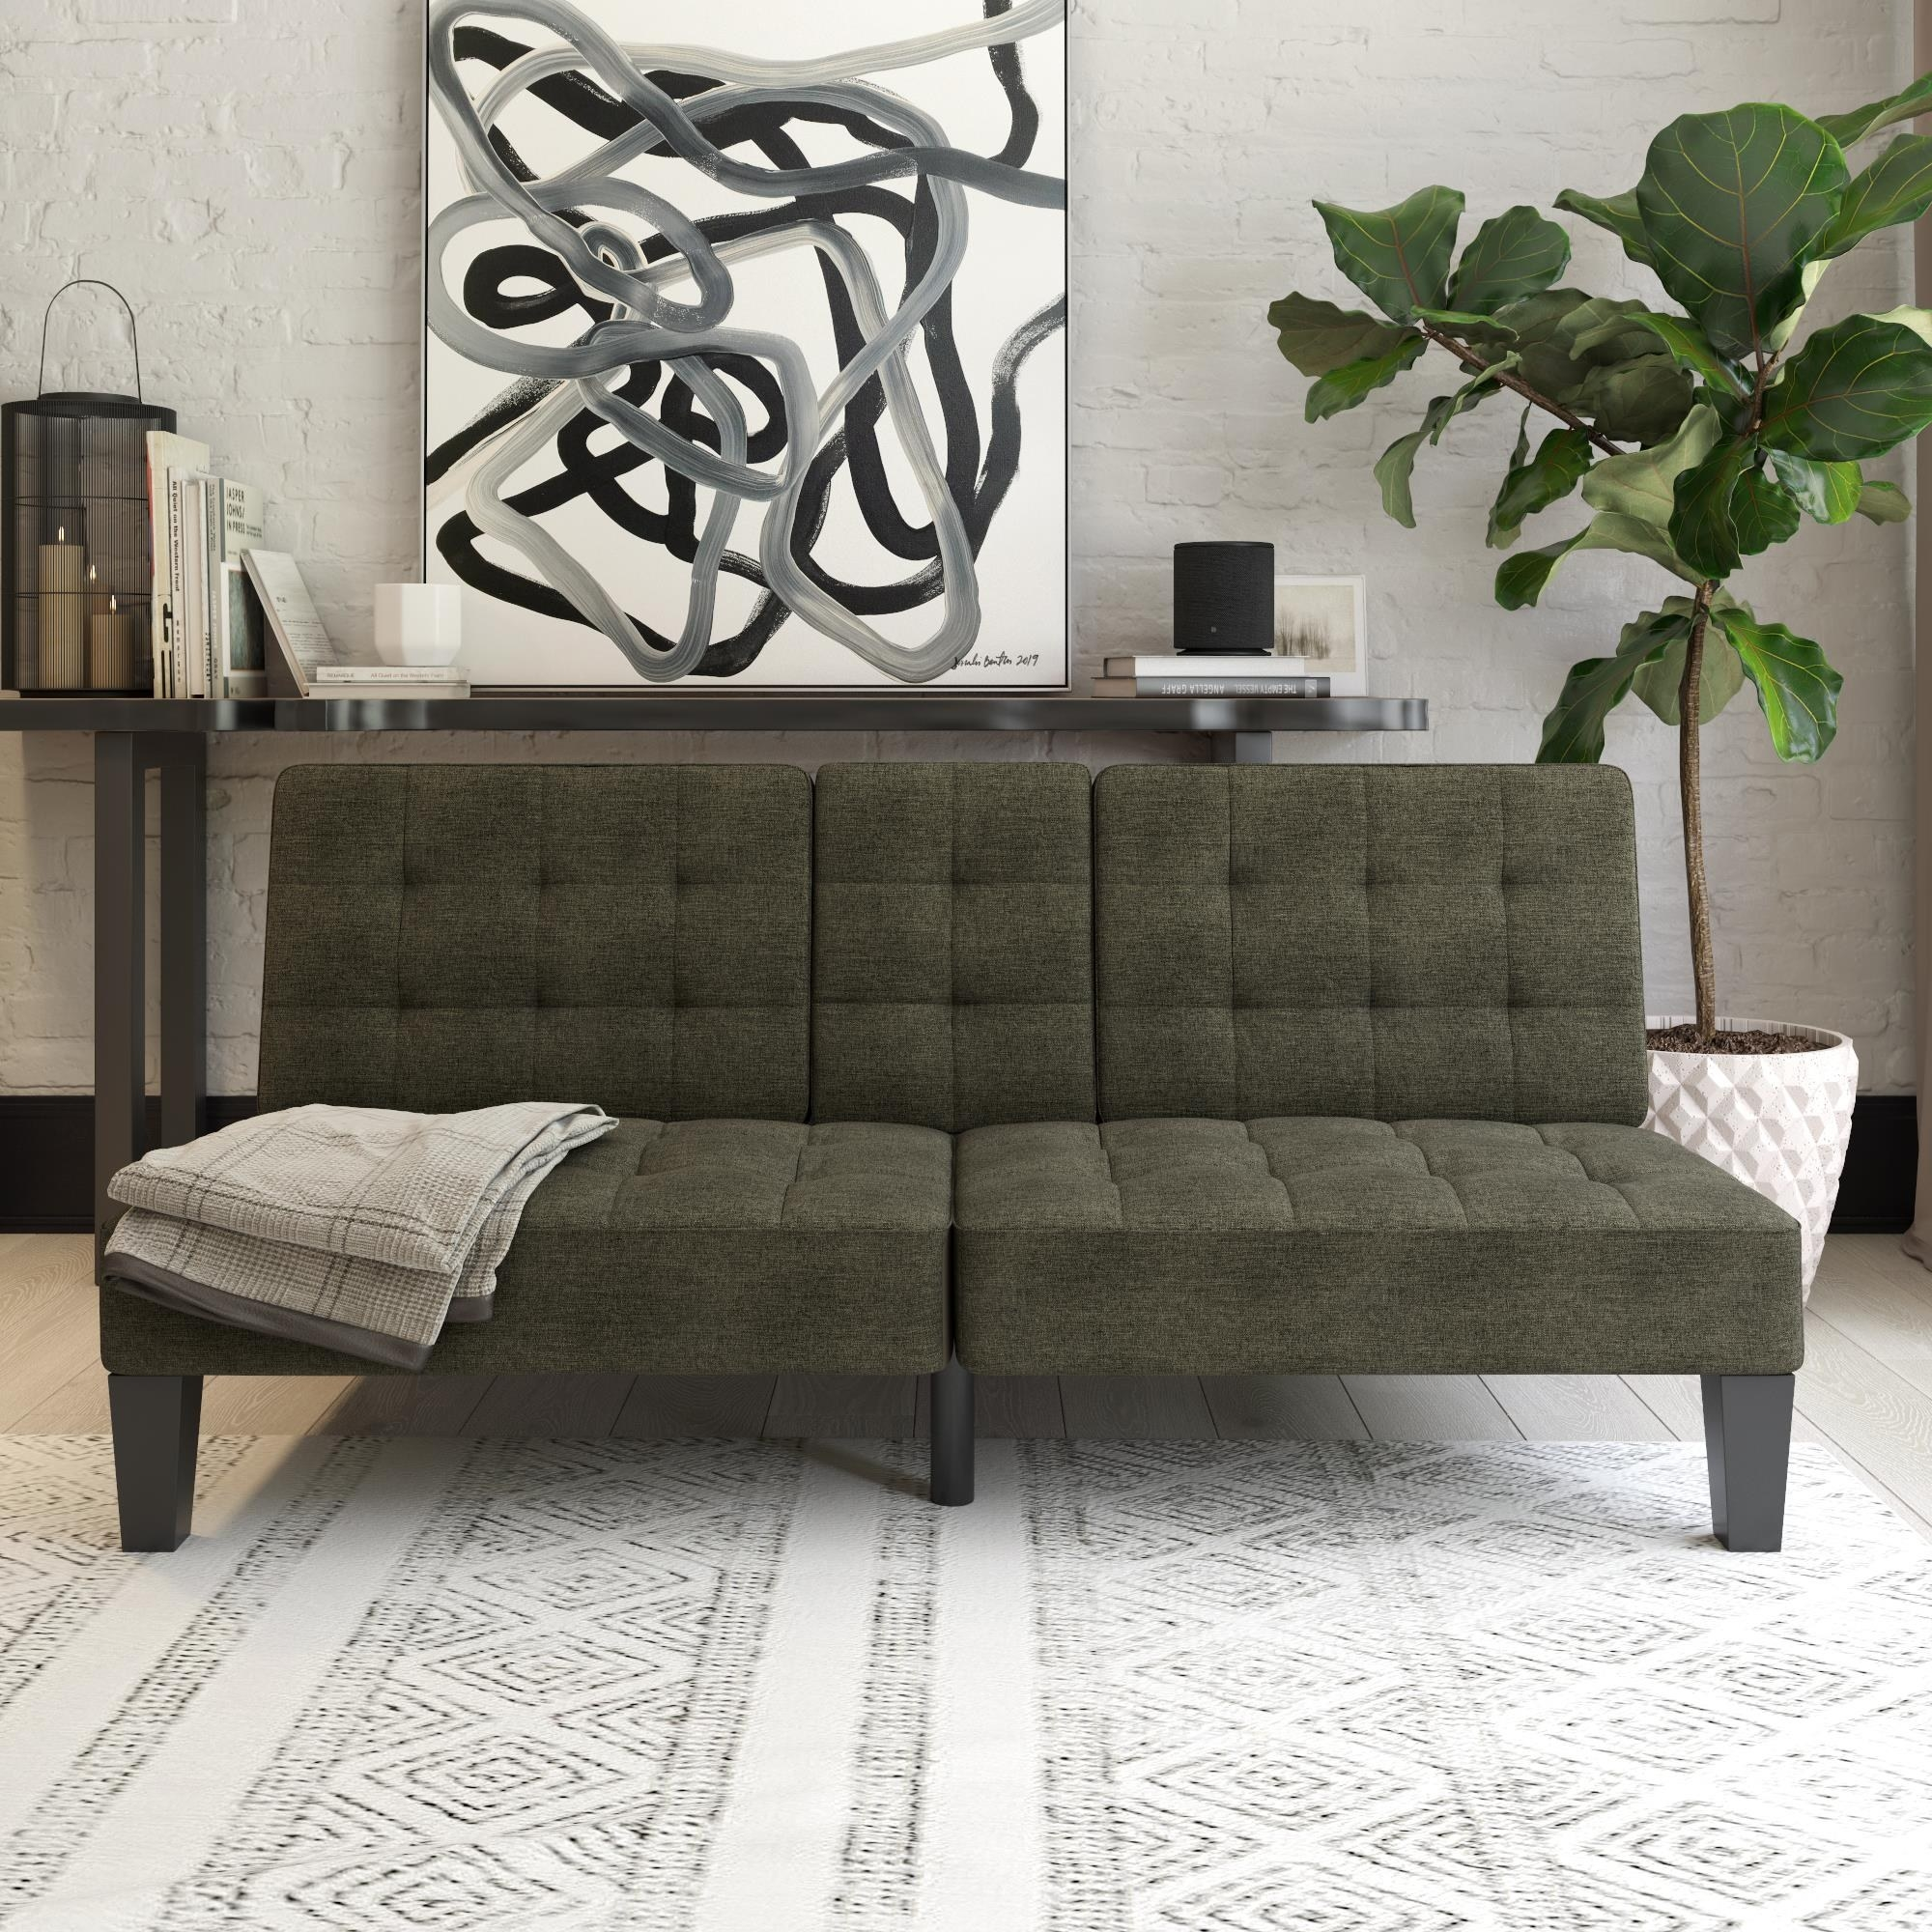 The army green couch with button tufting all over and a cupholder in the middle